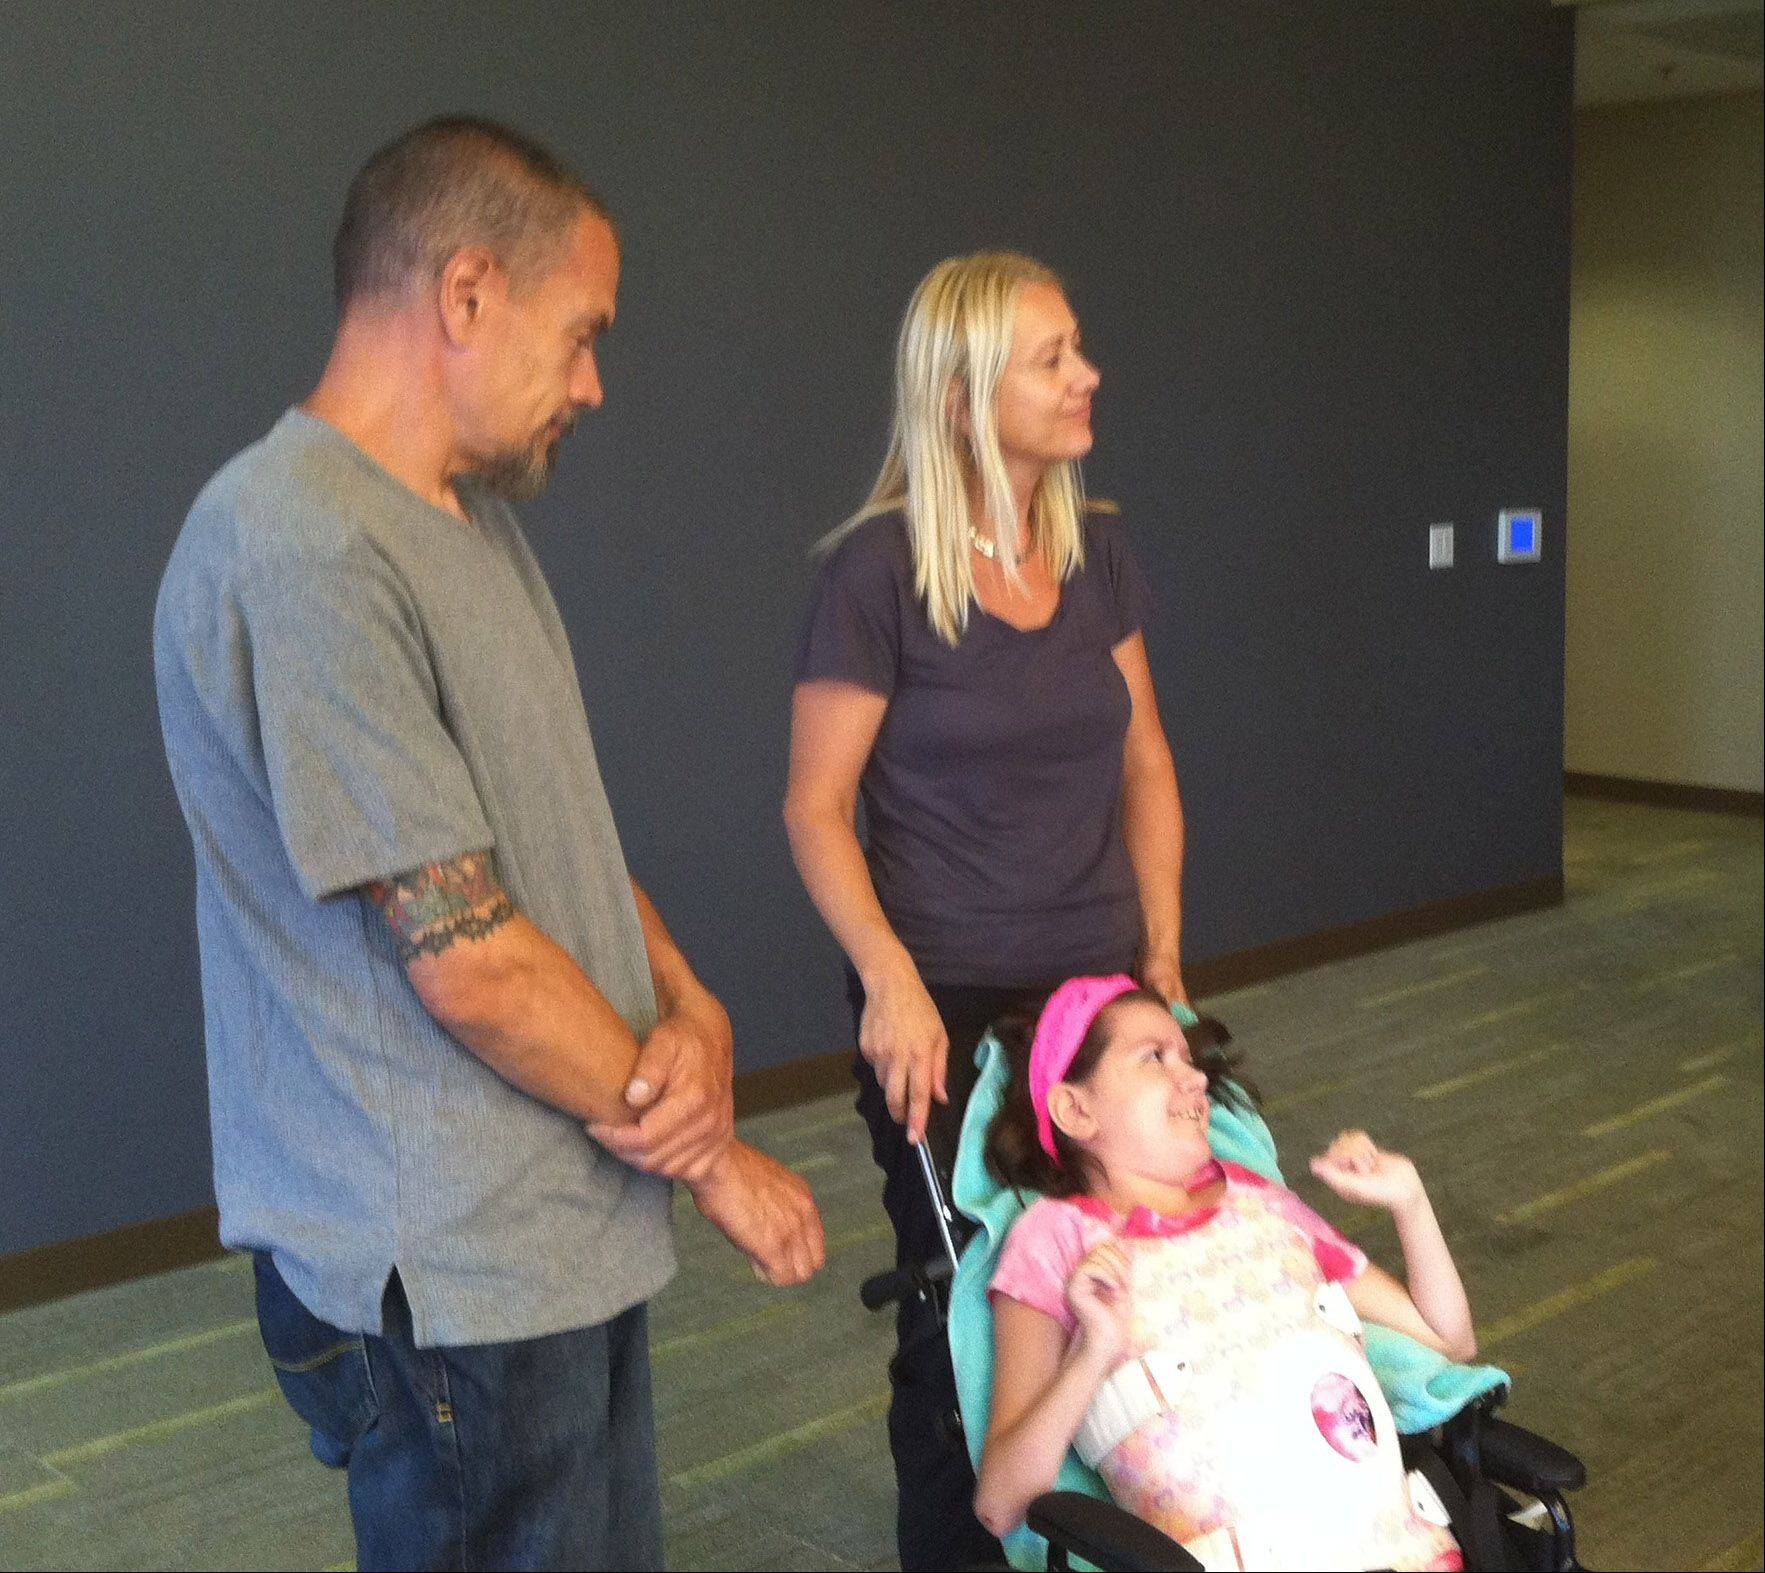 The Wheeling Village Board honored Peter and Tania Alt and their daughter, Emma, this week.